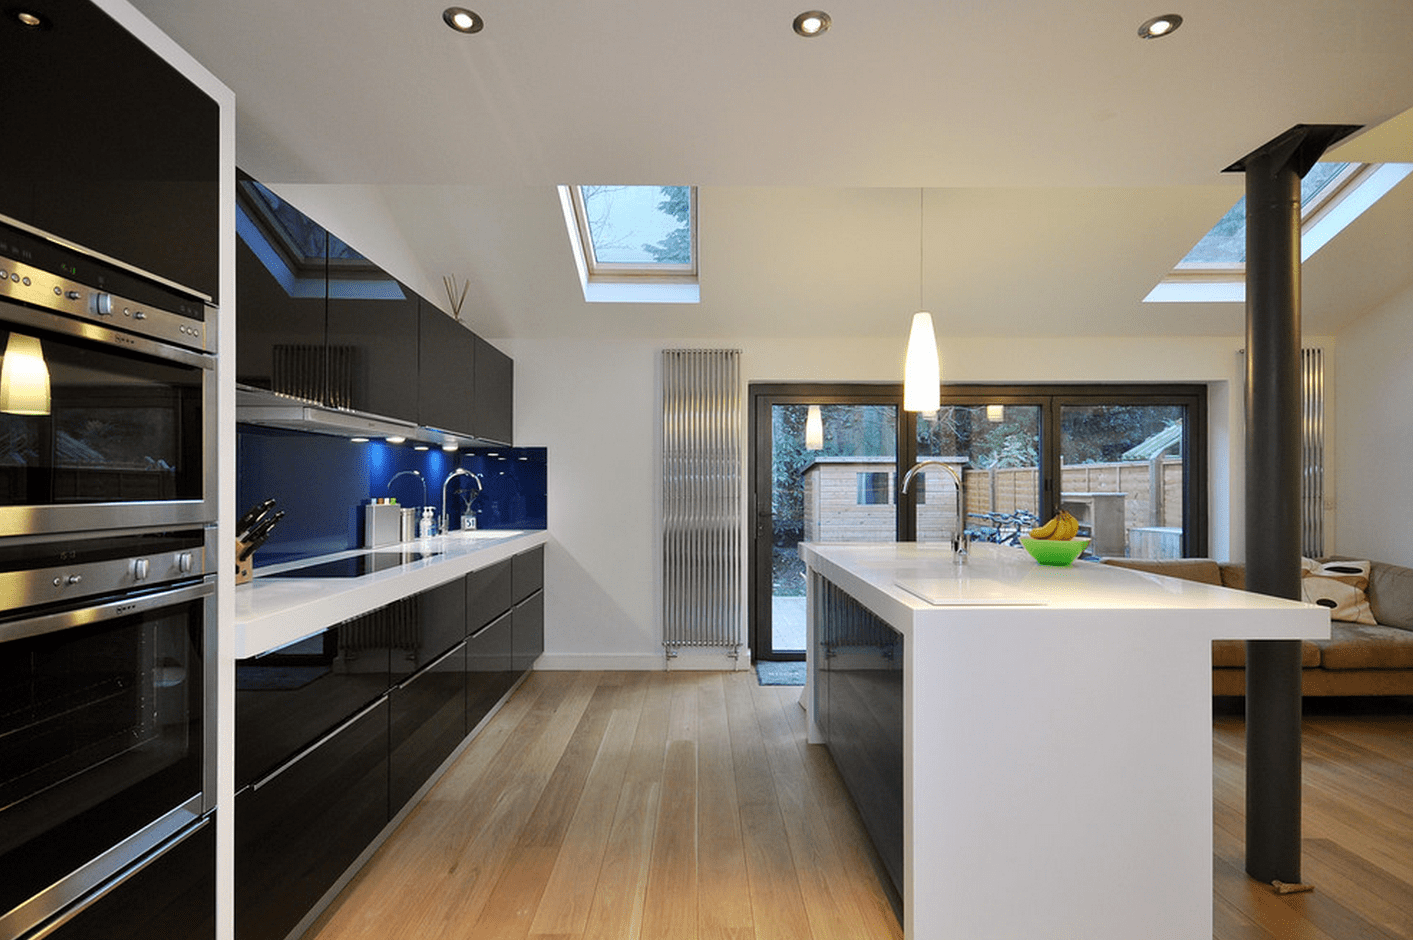 Black Furniture: Interior Design Photo Ideas. Light wall finishing of the kitchen with the wall-long solid black furniture set with glossy surfaces